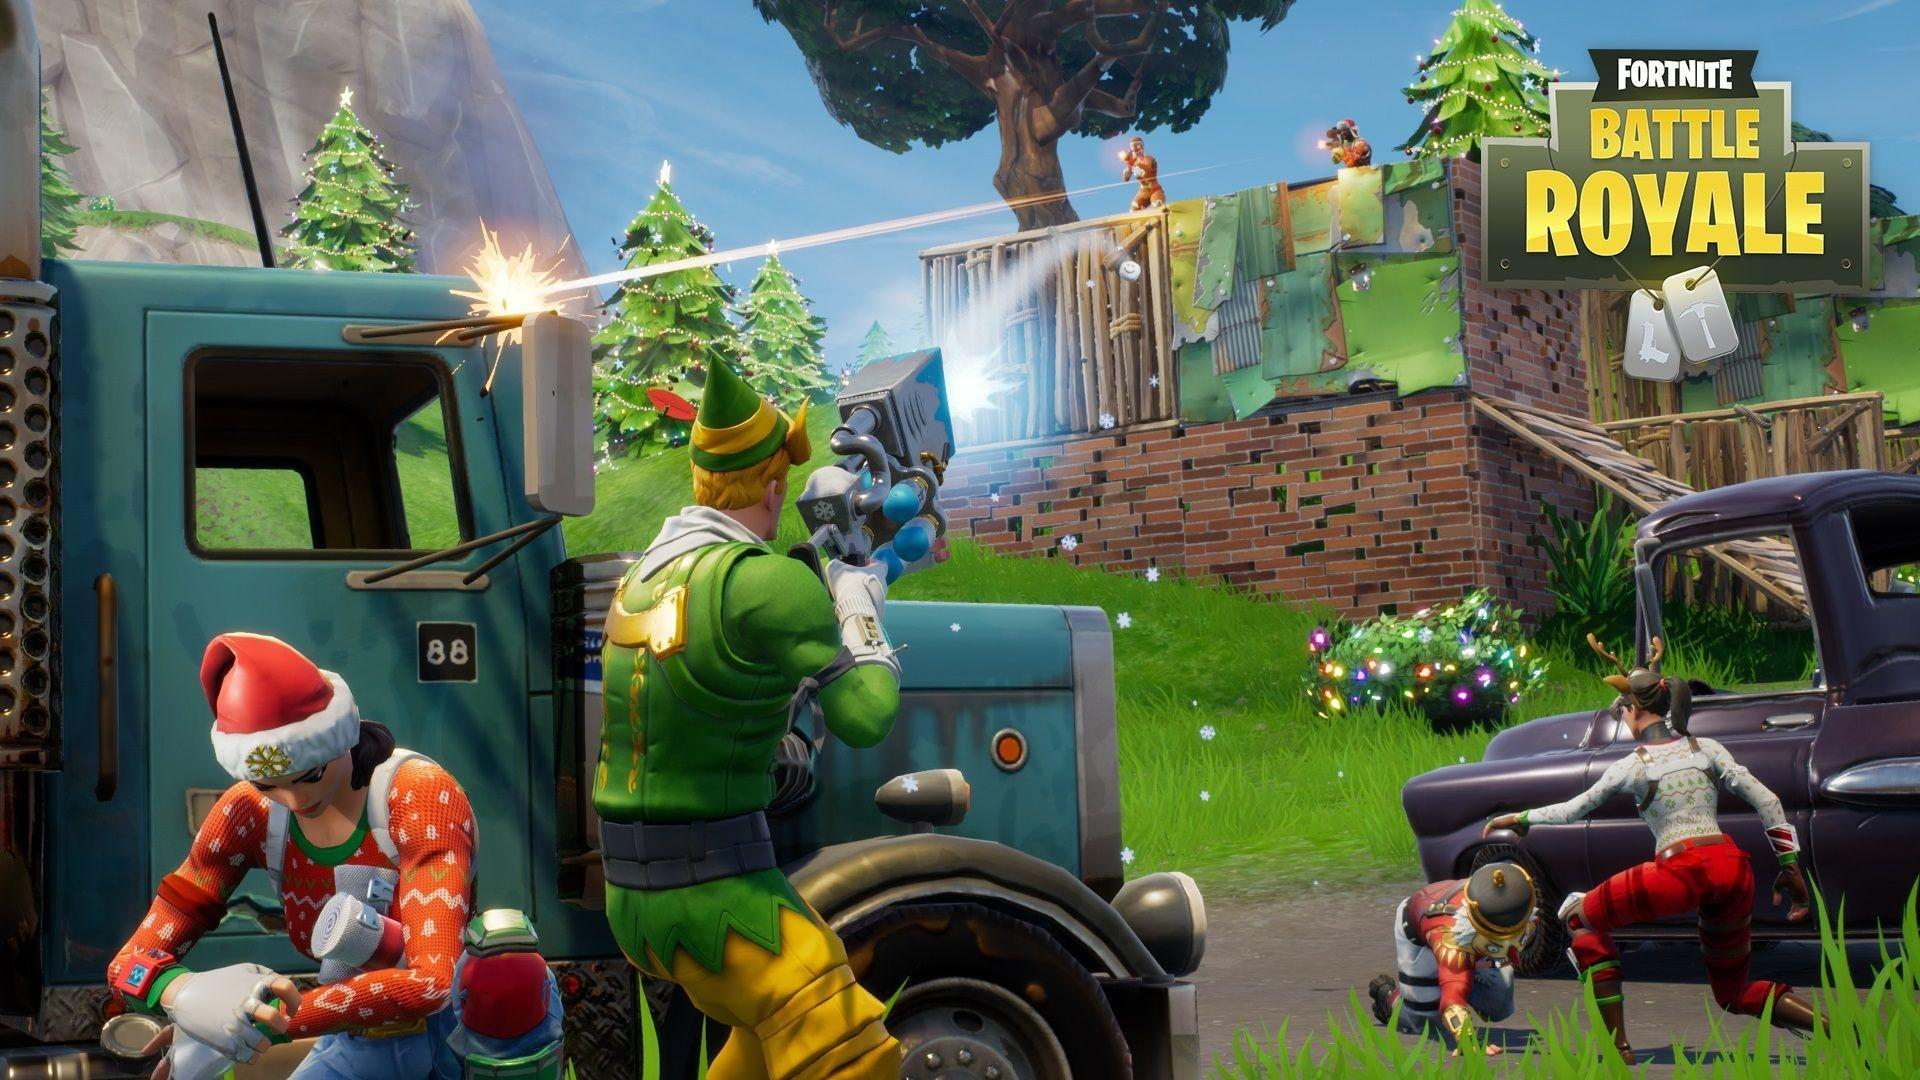 Fortnite Battle Royale' update adds biomes and a huge new city to